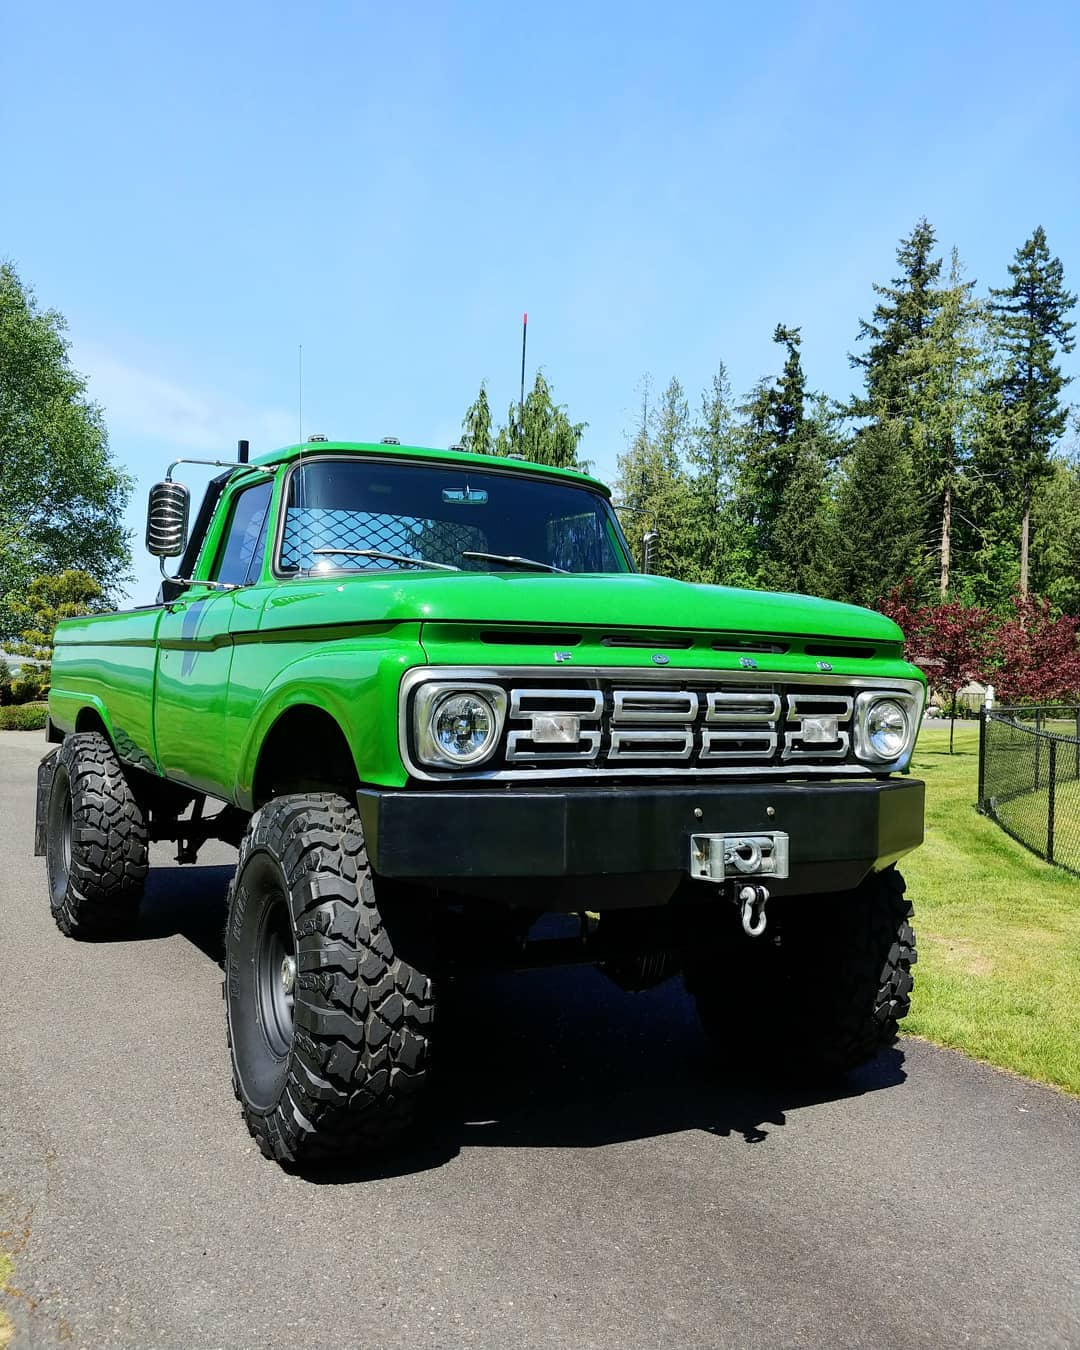 1965 Ford F100 With a 64 Grill On 41.5 Pitbull Tires 5.jpg